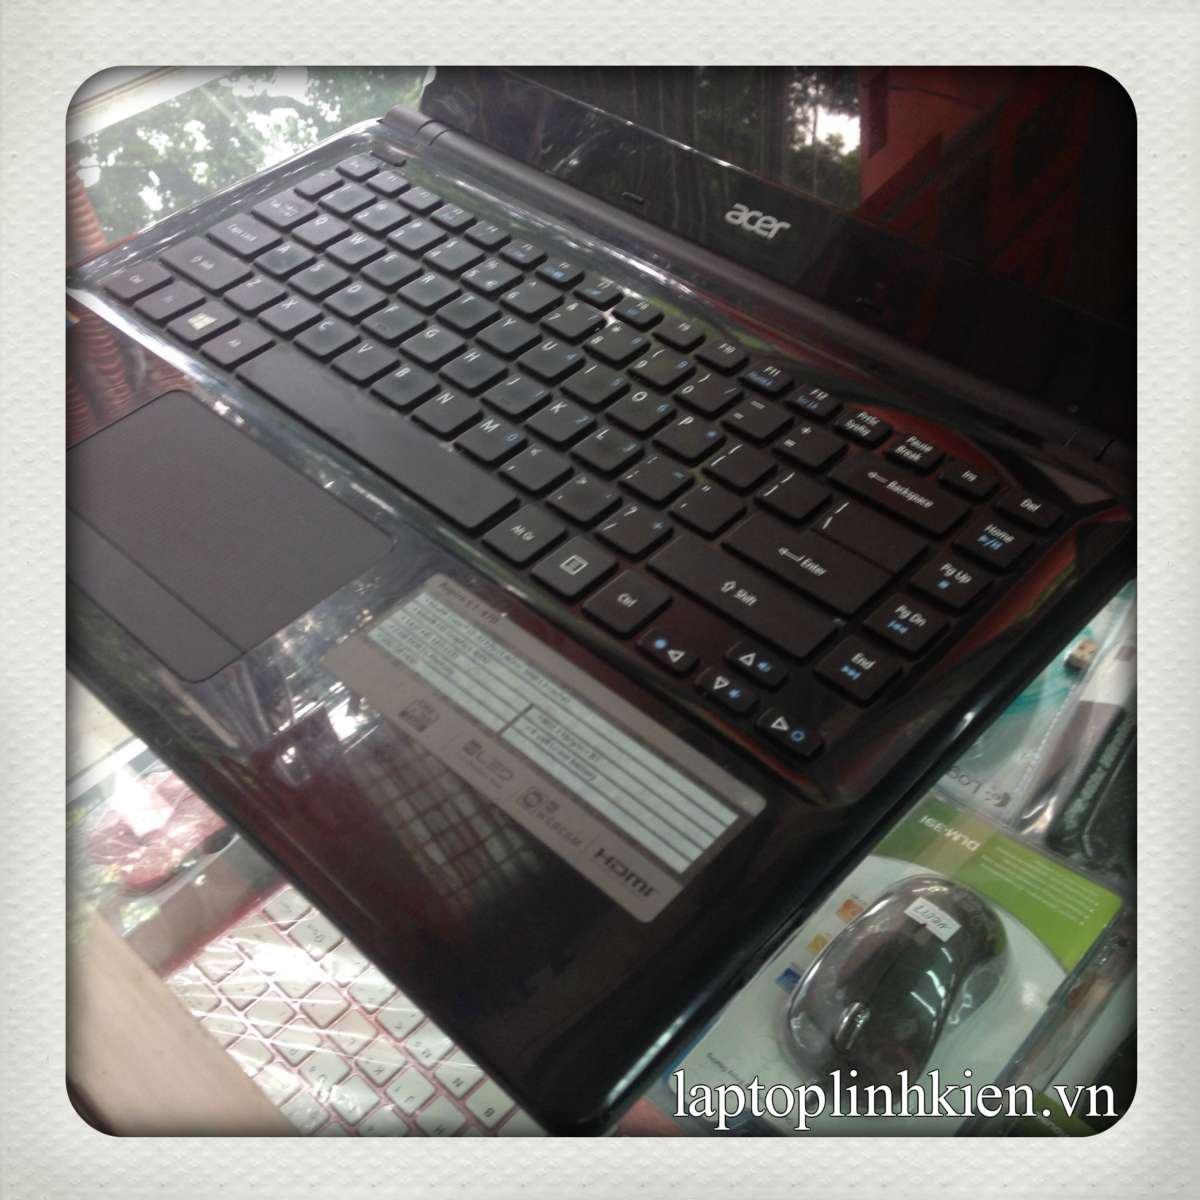 Laptop cũ Acer E1-470 Core i3-3217 Ram 2GB HDD 500GB,14